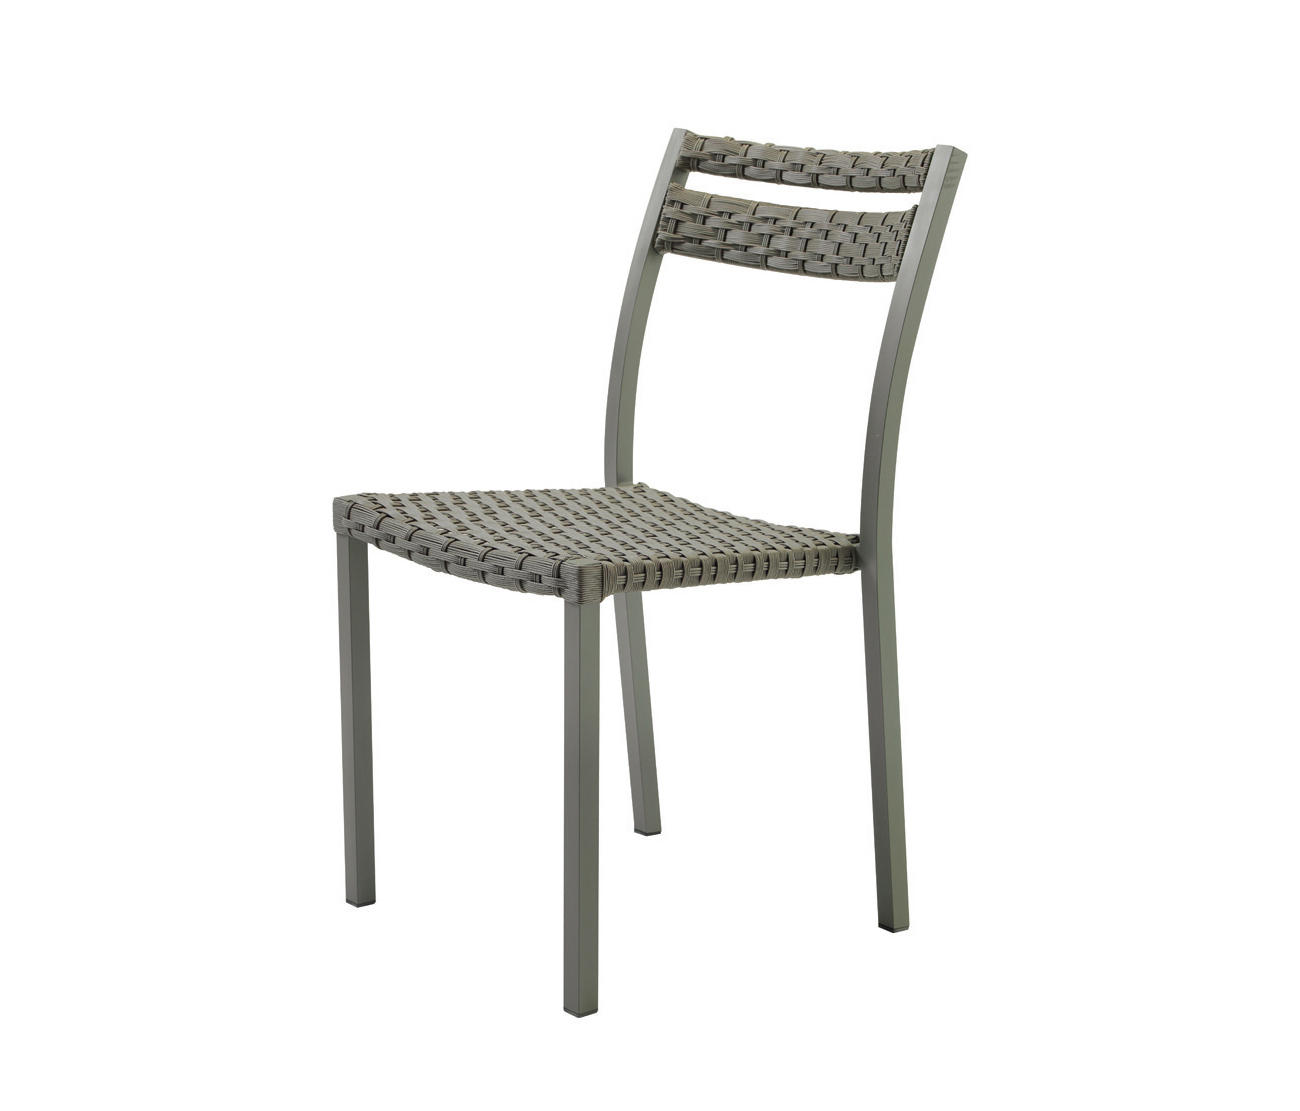 Infinity Chairs: INFINITY CHAIR - Chairs From Ethimo